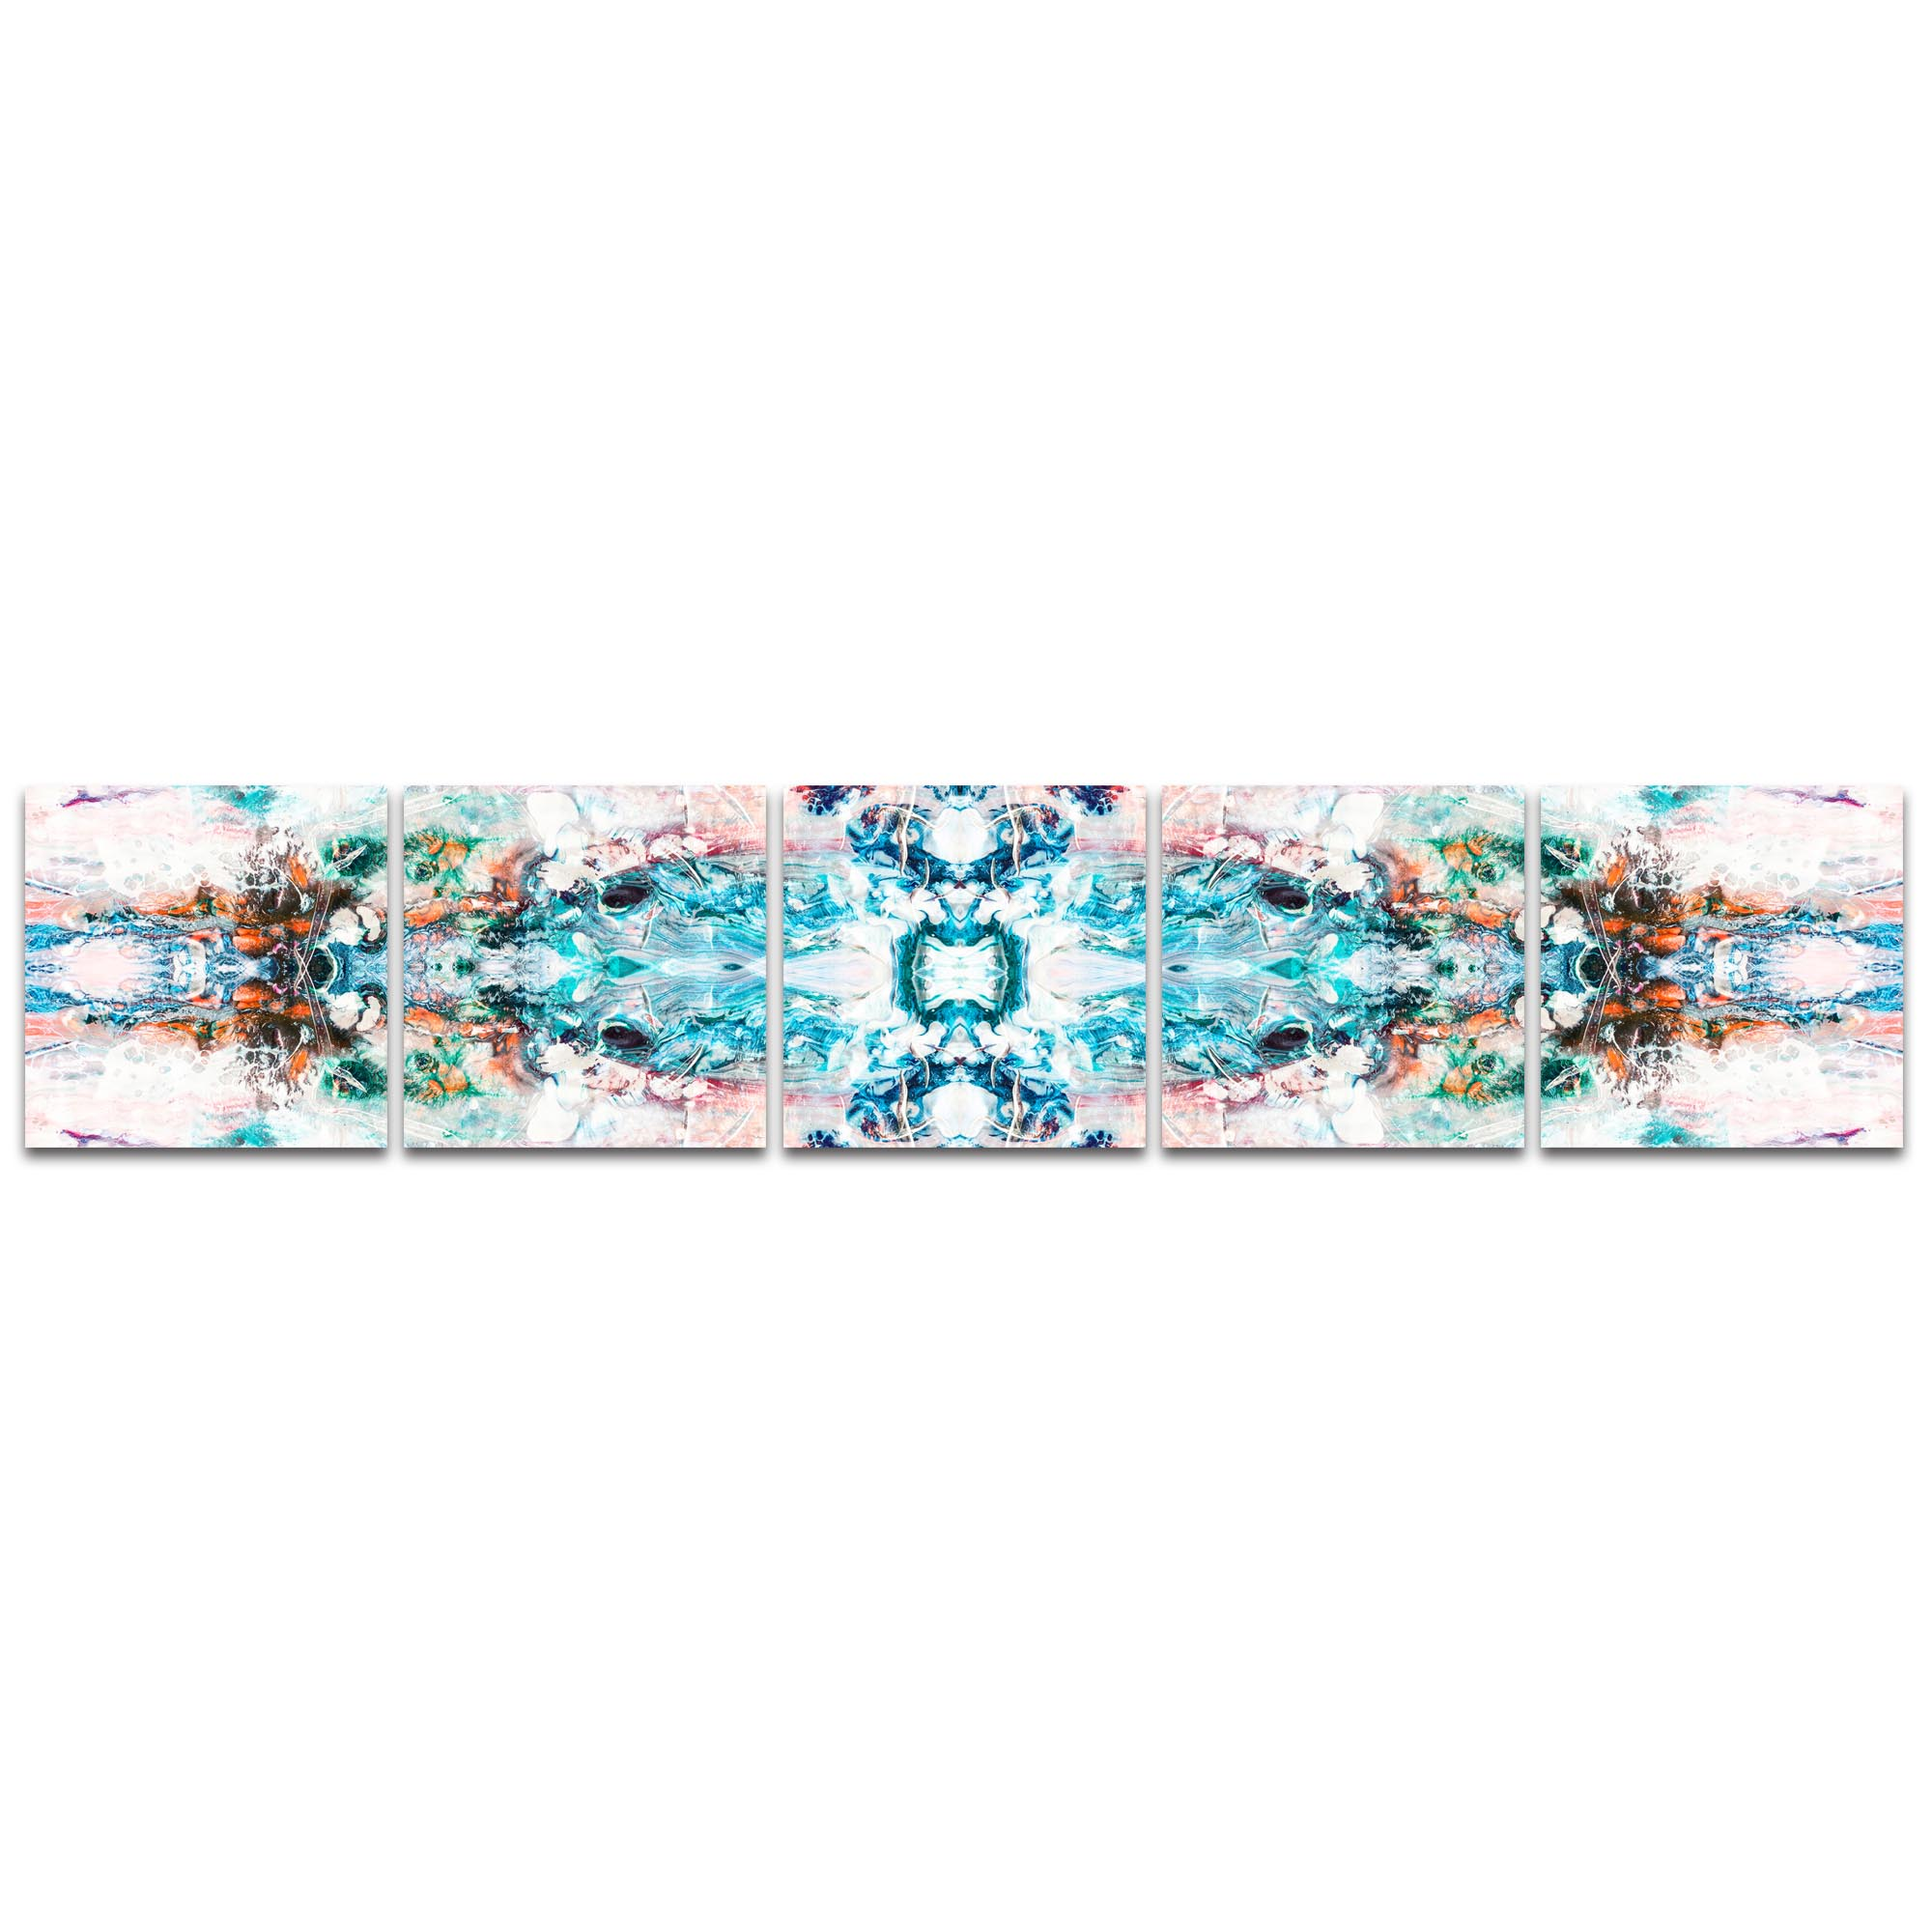 Abstract Wall Art 'Celestial' - Colorful Urban Decor on Metal or Plexiglass